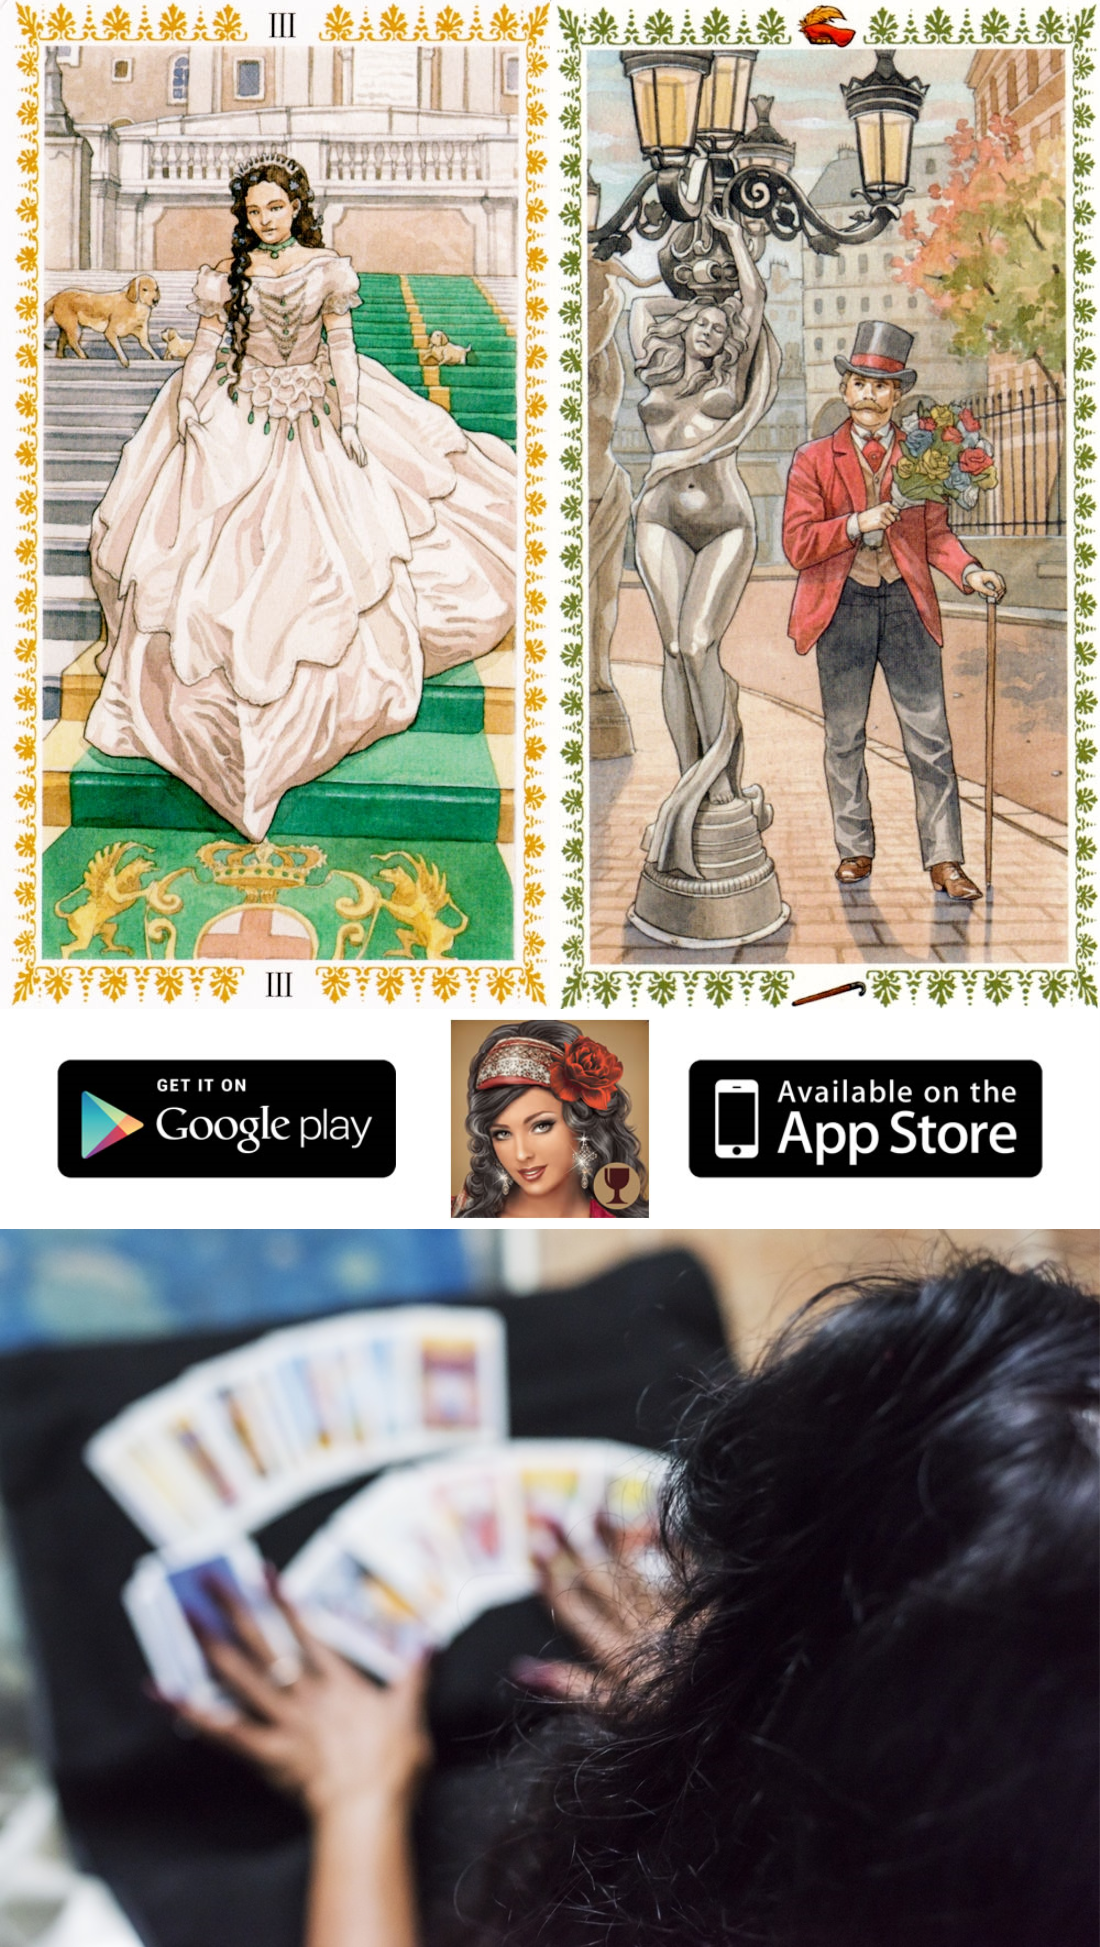 ☞ Get this FREE application on your phone or tablet and